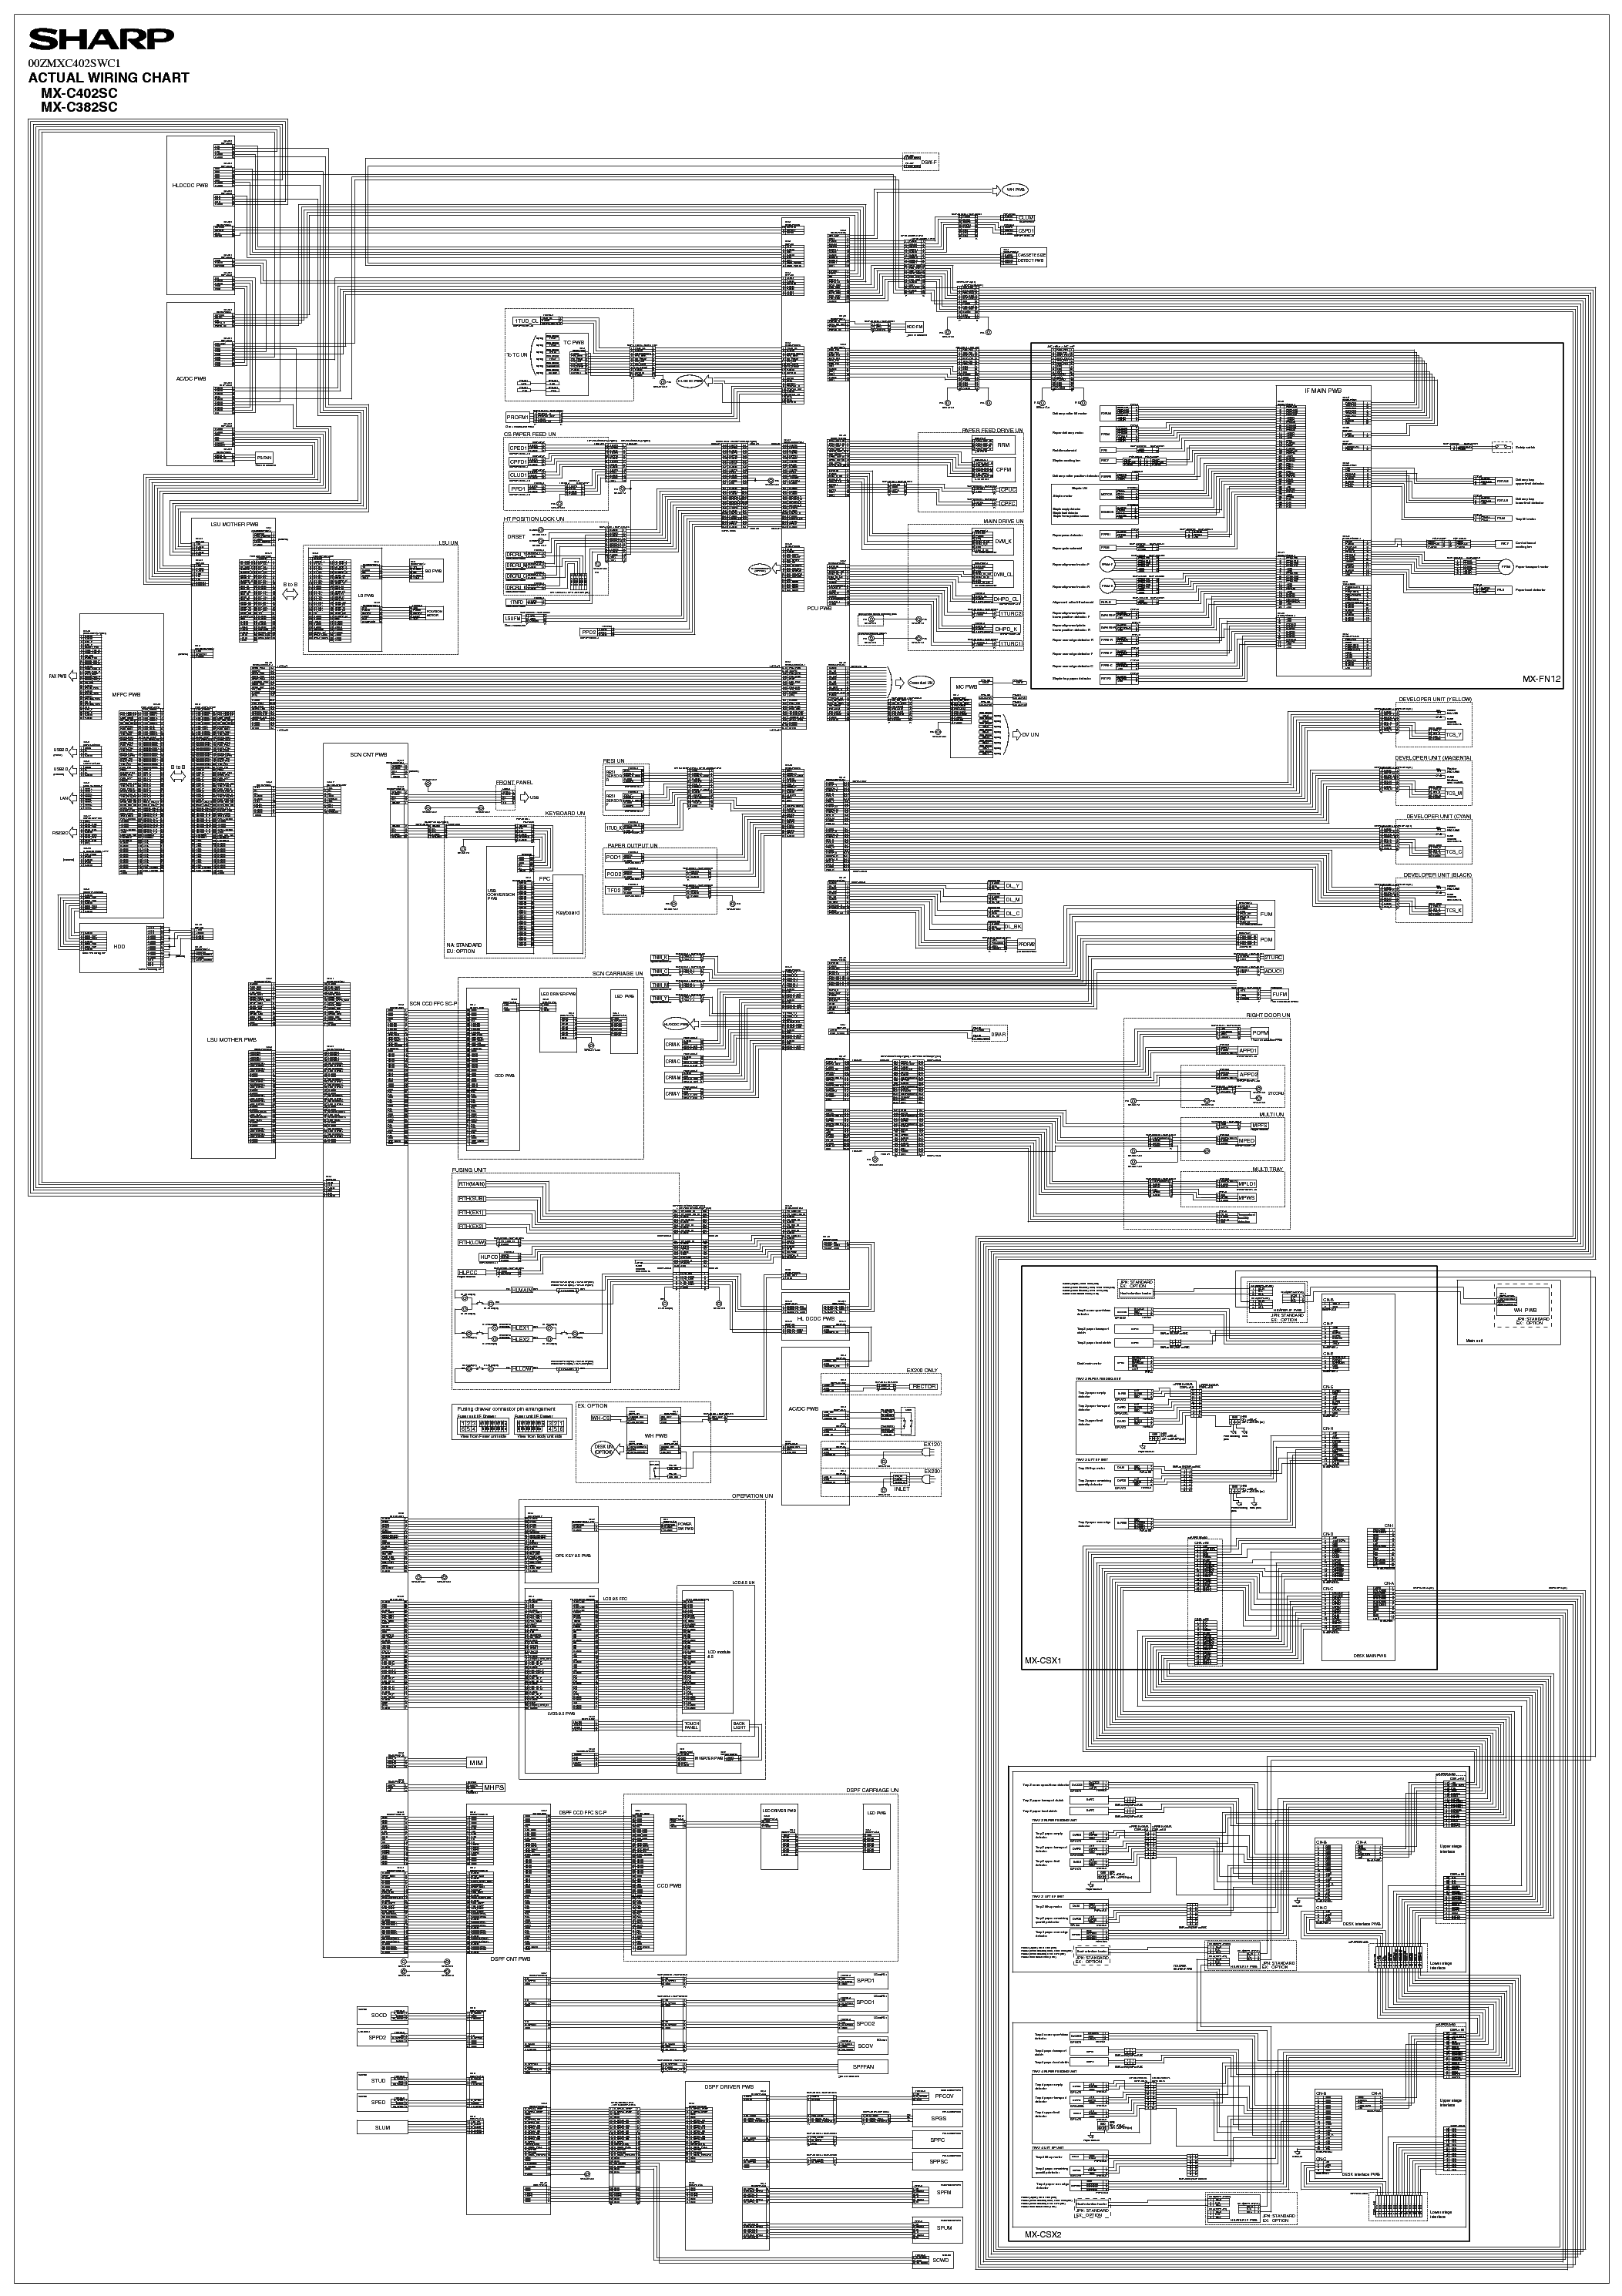 Sharp Mx C382sc Mx C402sc Wiring Diagram Service Manual Download Schematics Eeprom Repair